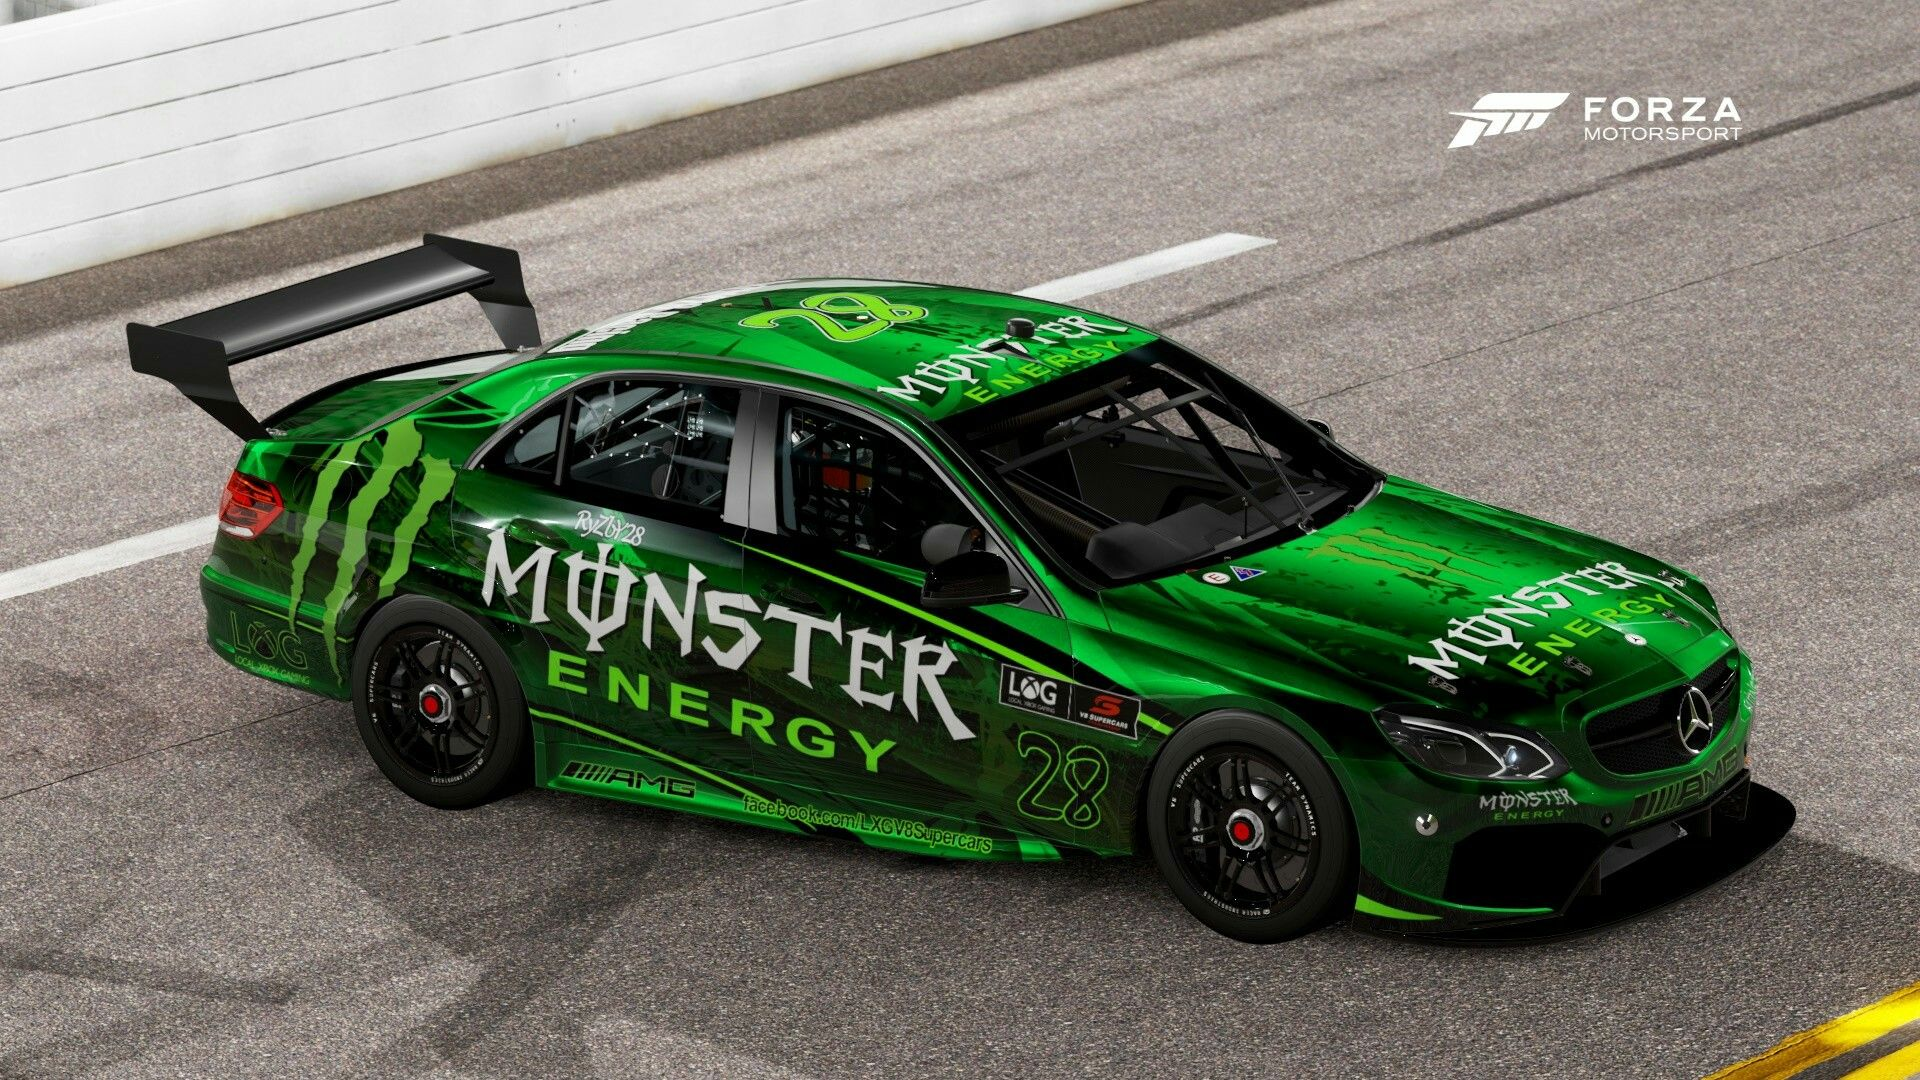 West launches new monster mercedes for daytona local xbox gaming v8 supercars championship